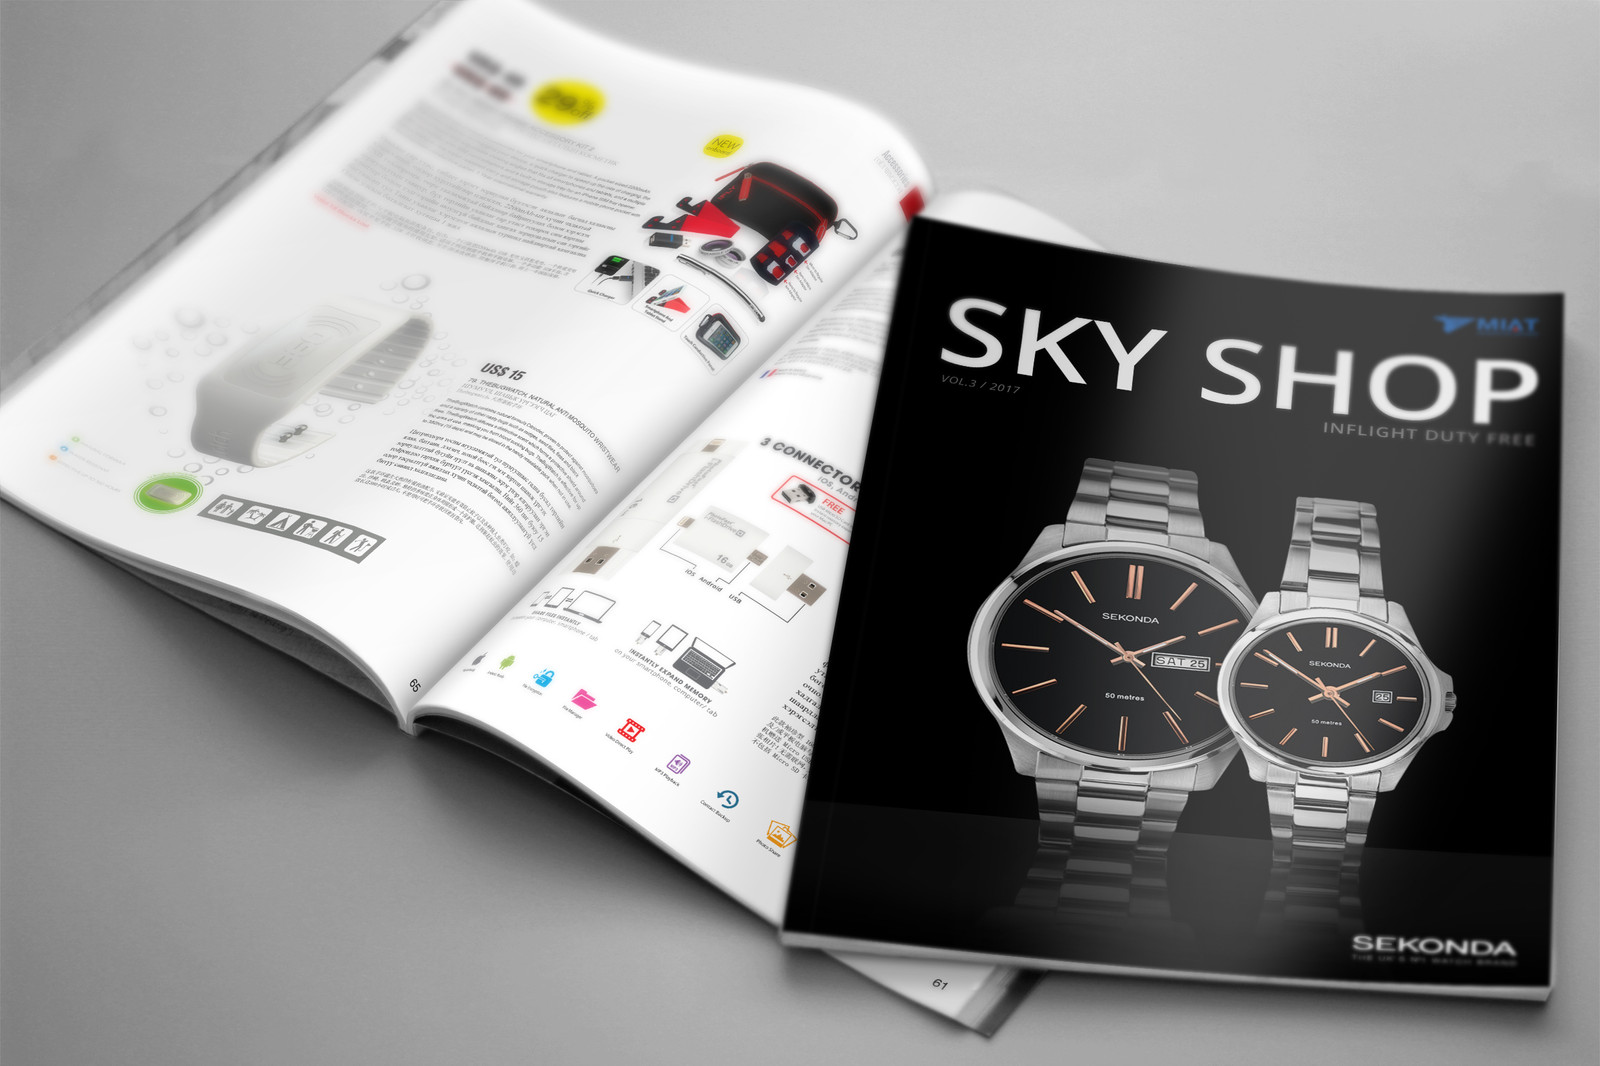 Inflight Duty free Magazine covers